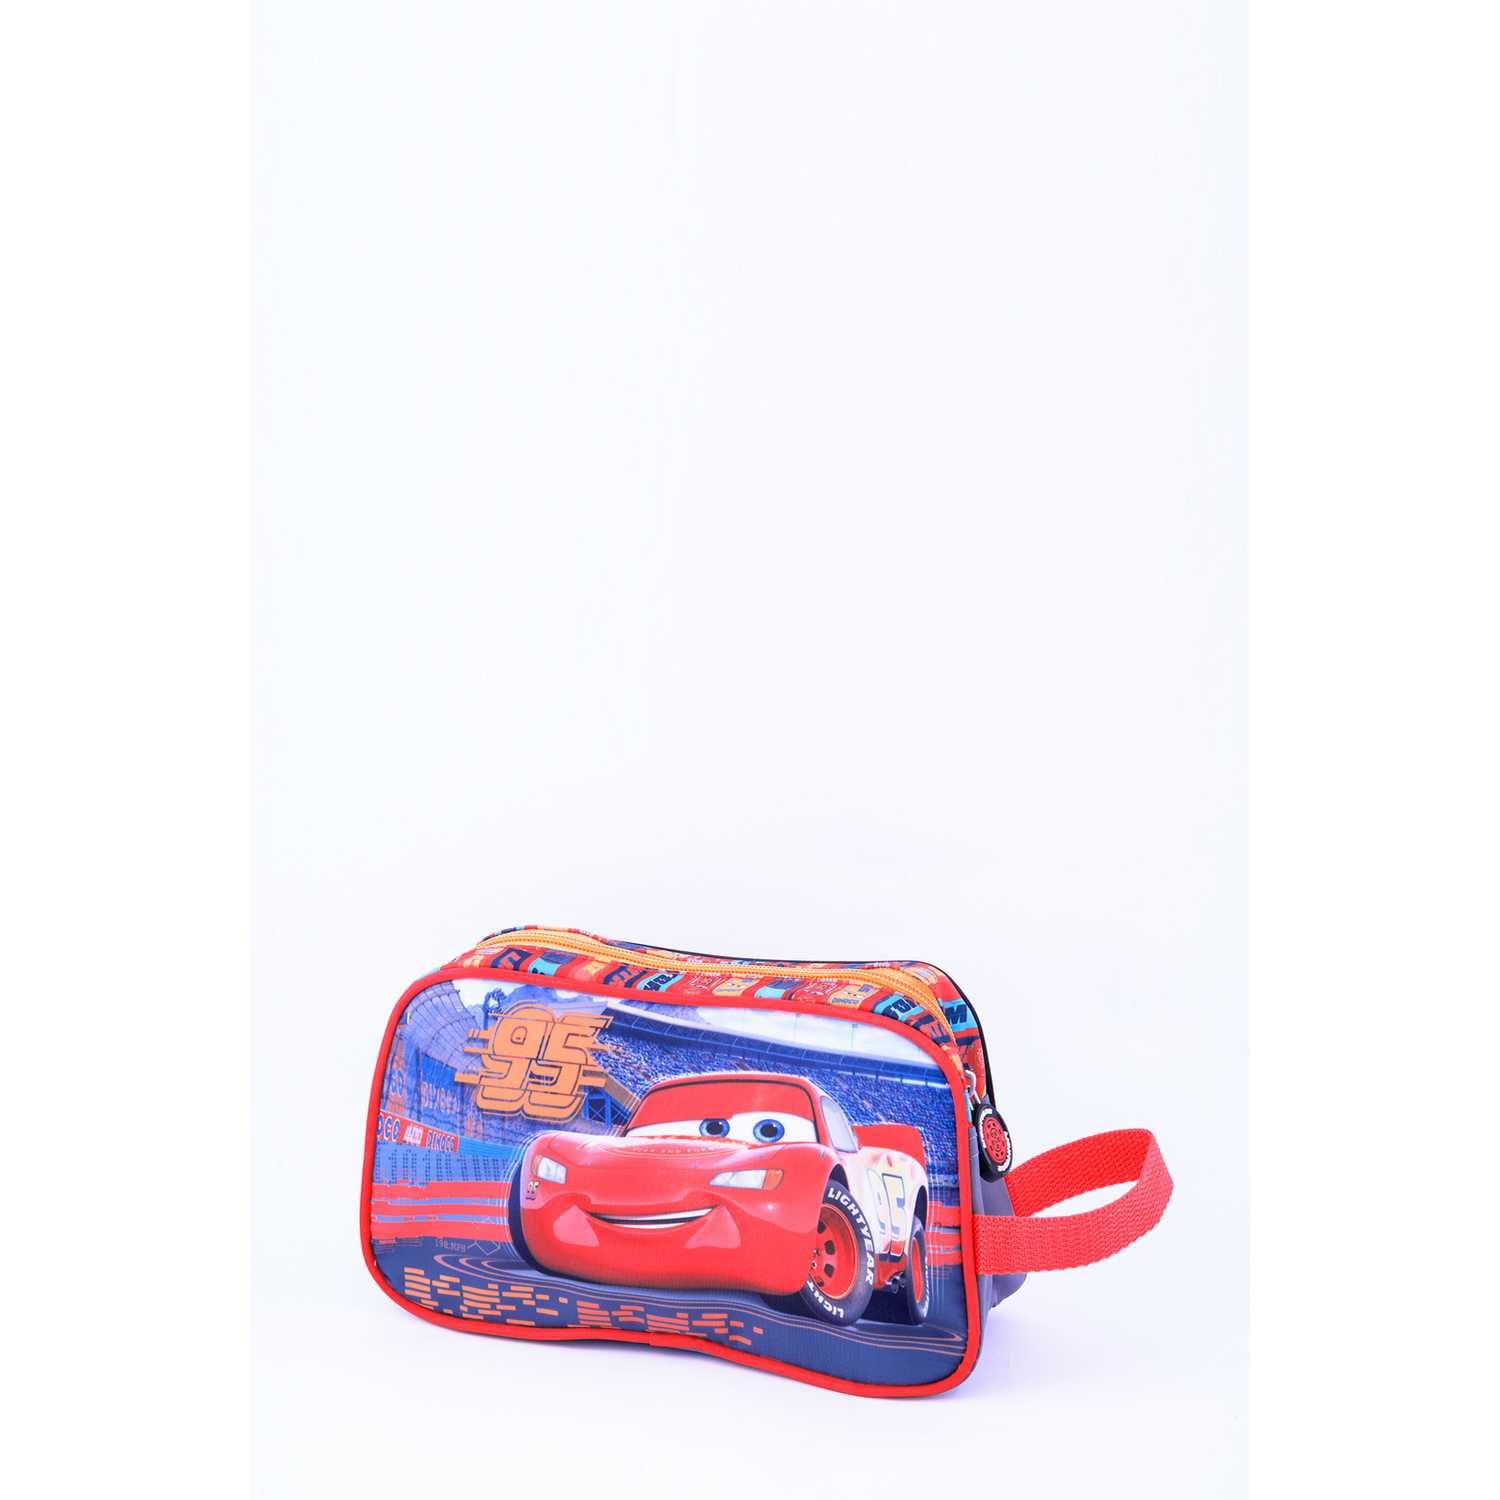 Cartuchera de Niño Scool Naranja 9 scool cars cart cuento division